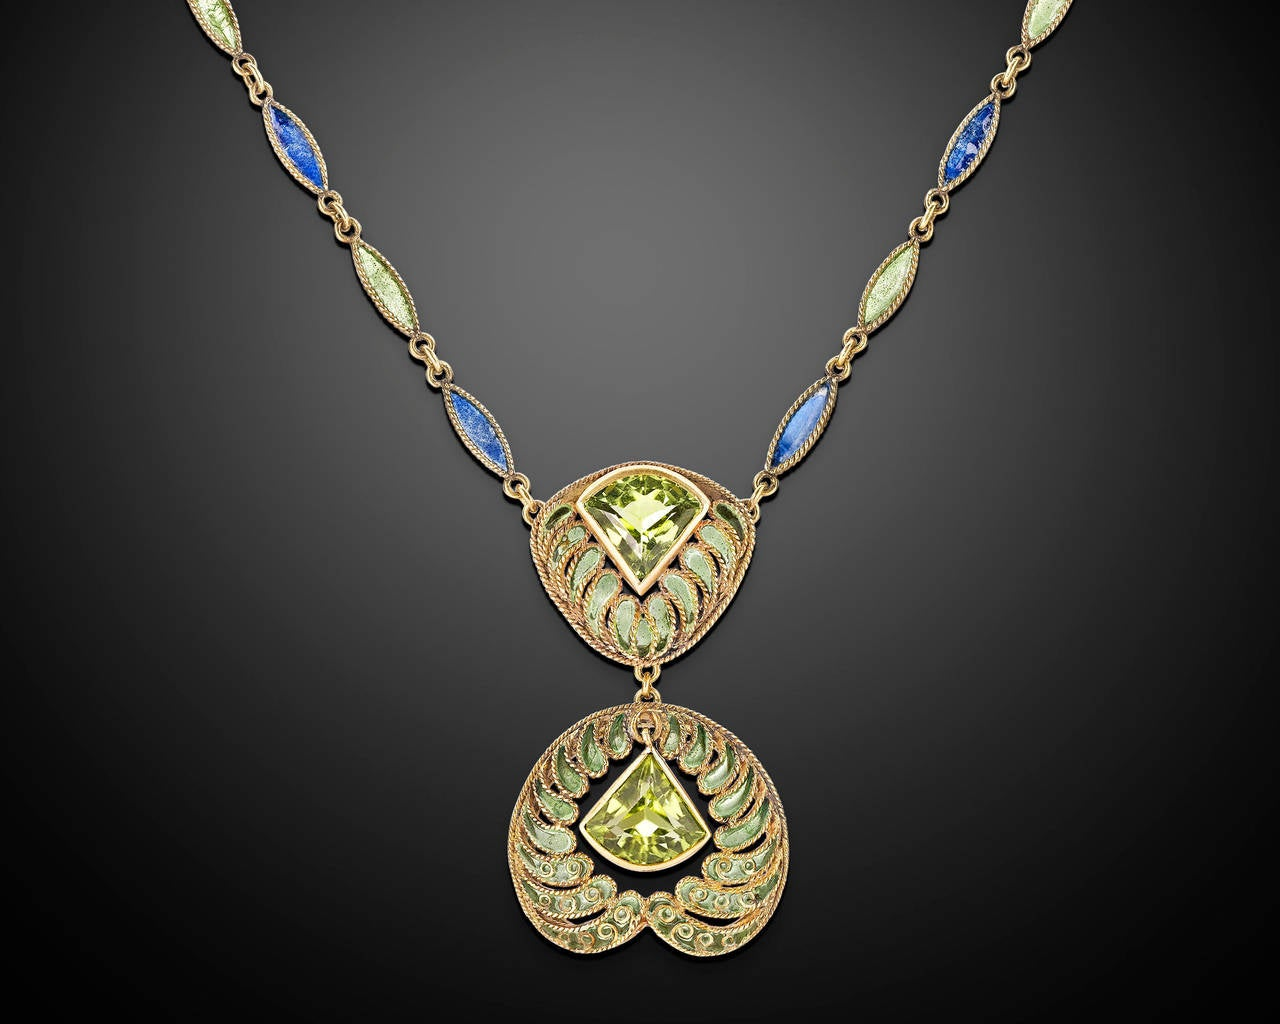 Crafted by the legendary artist and designer Louis Comfort Tiffany for Tiffany & Co., this extraordinary peridot and plique-à-jour enamel necklace is a rare and unique masterpiece of jewelry design. Delicately crafted, the necklace boasts finely